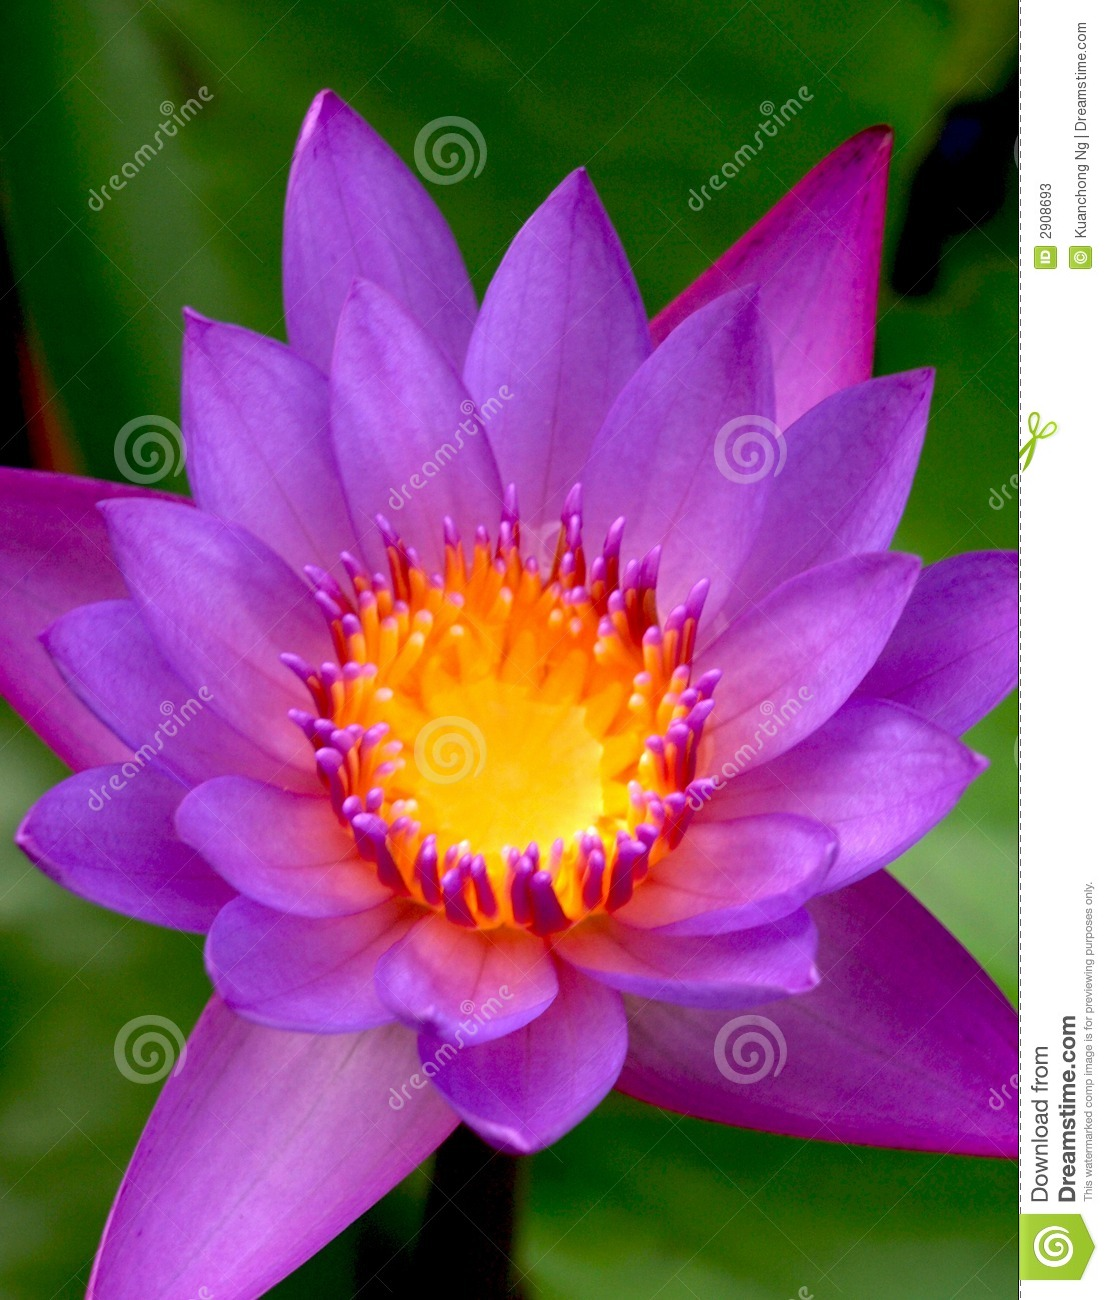 Purple Peace Lily - Bing images